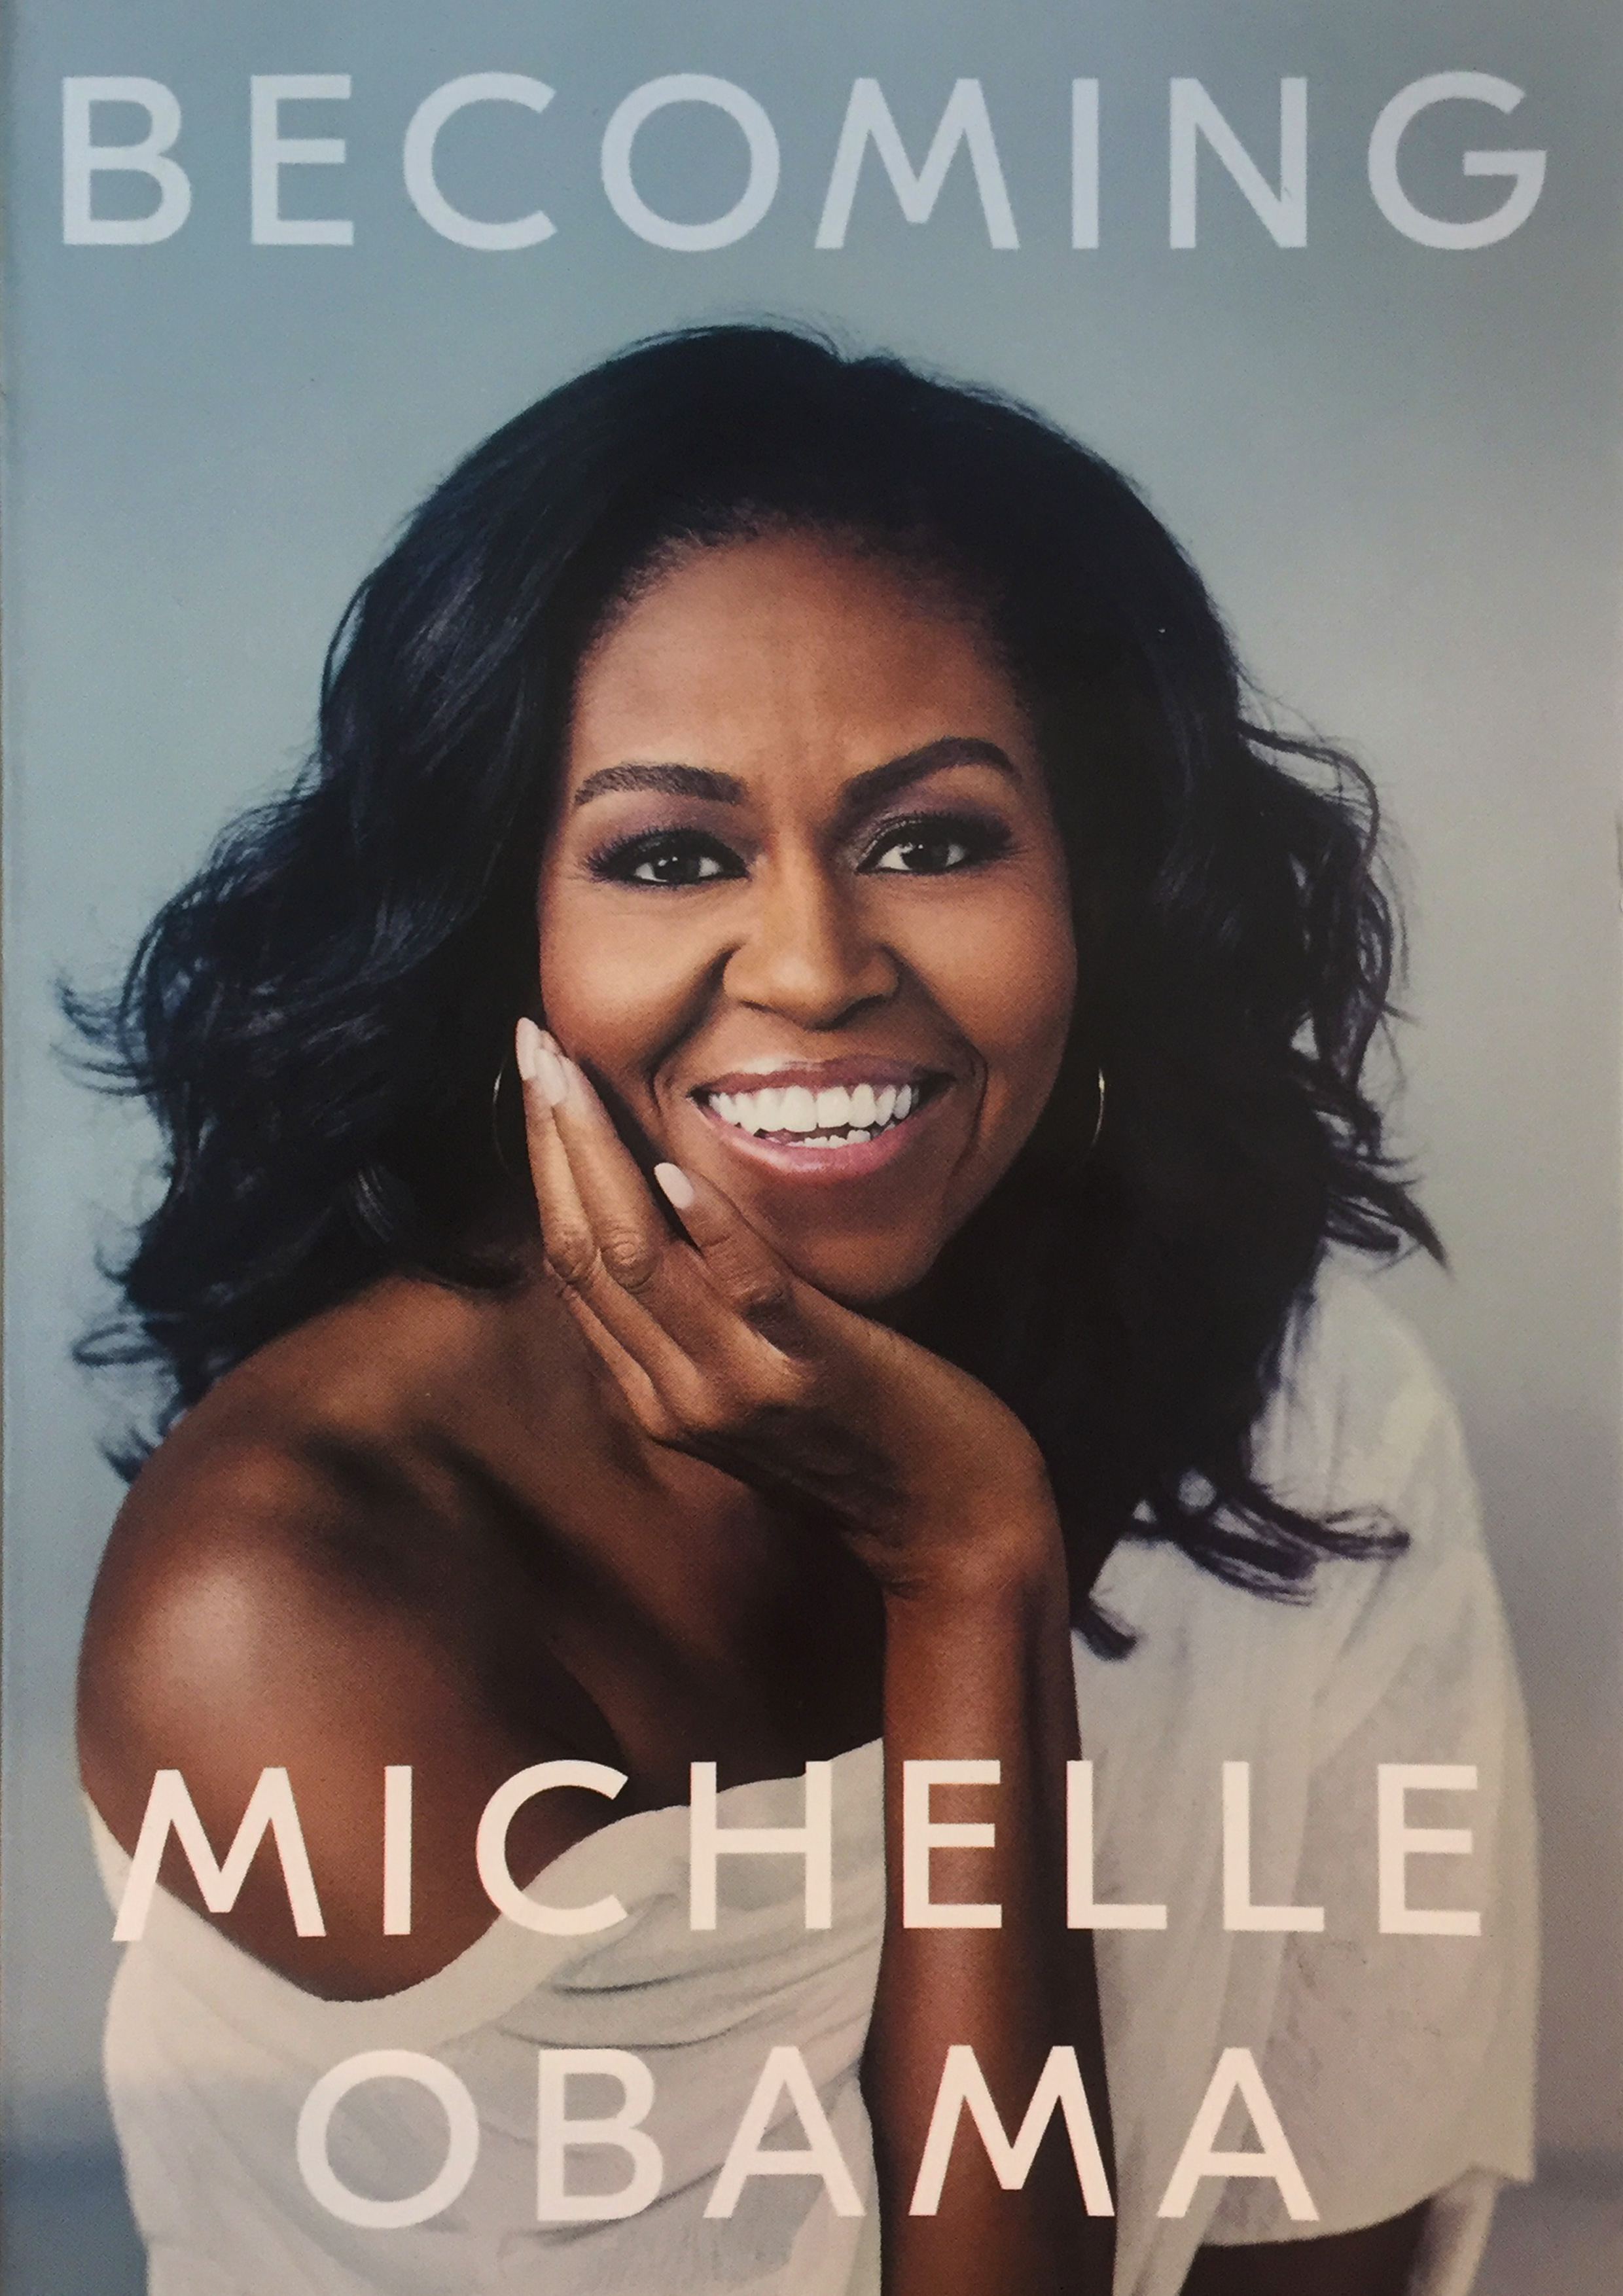 Becoming explores balance in life, which is truly inspiring| Becoming | Michelle Obama| Kelly Hoppen | STIR